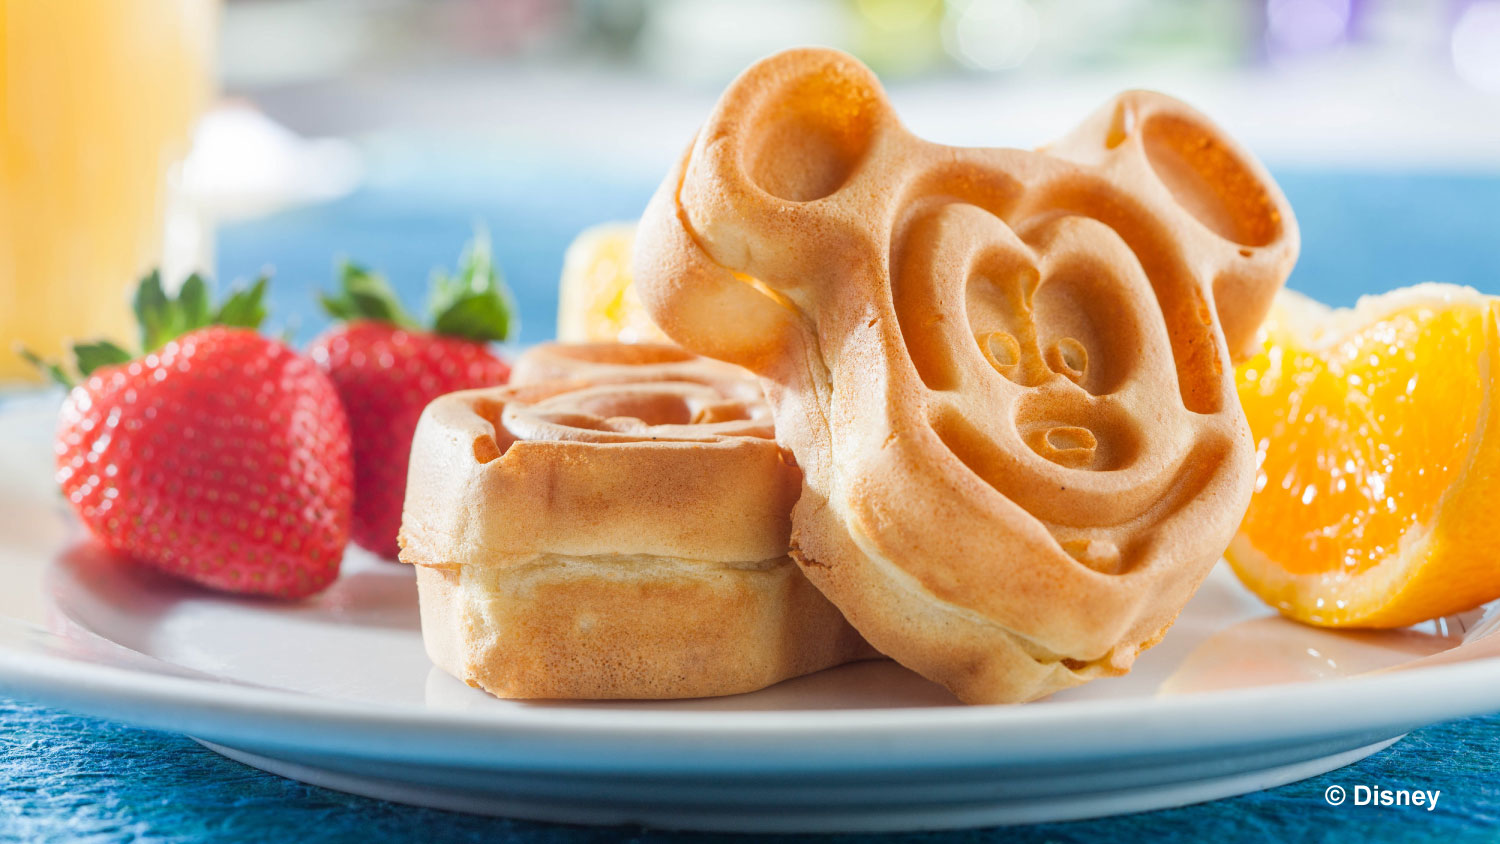 Mickey shaped waffles